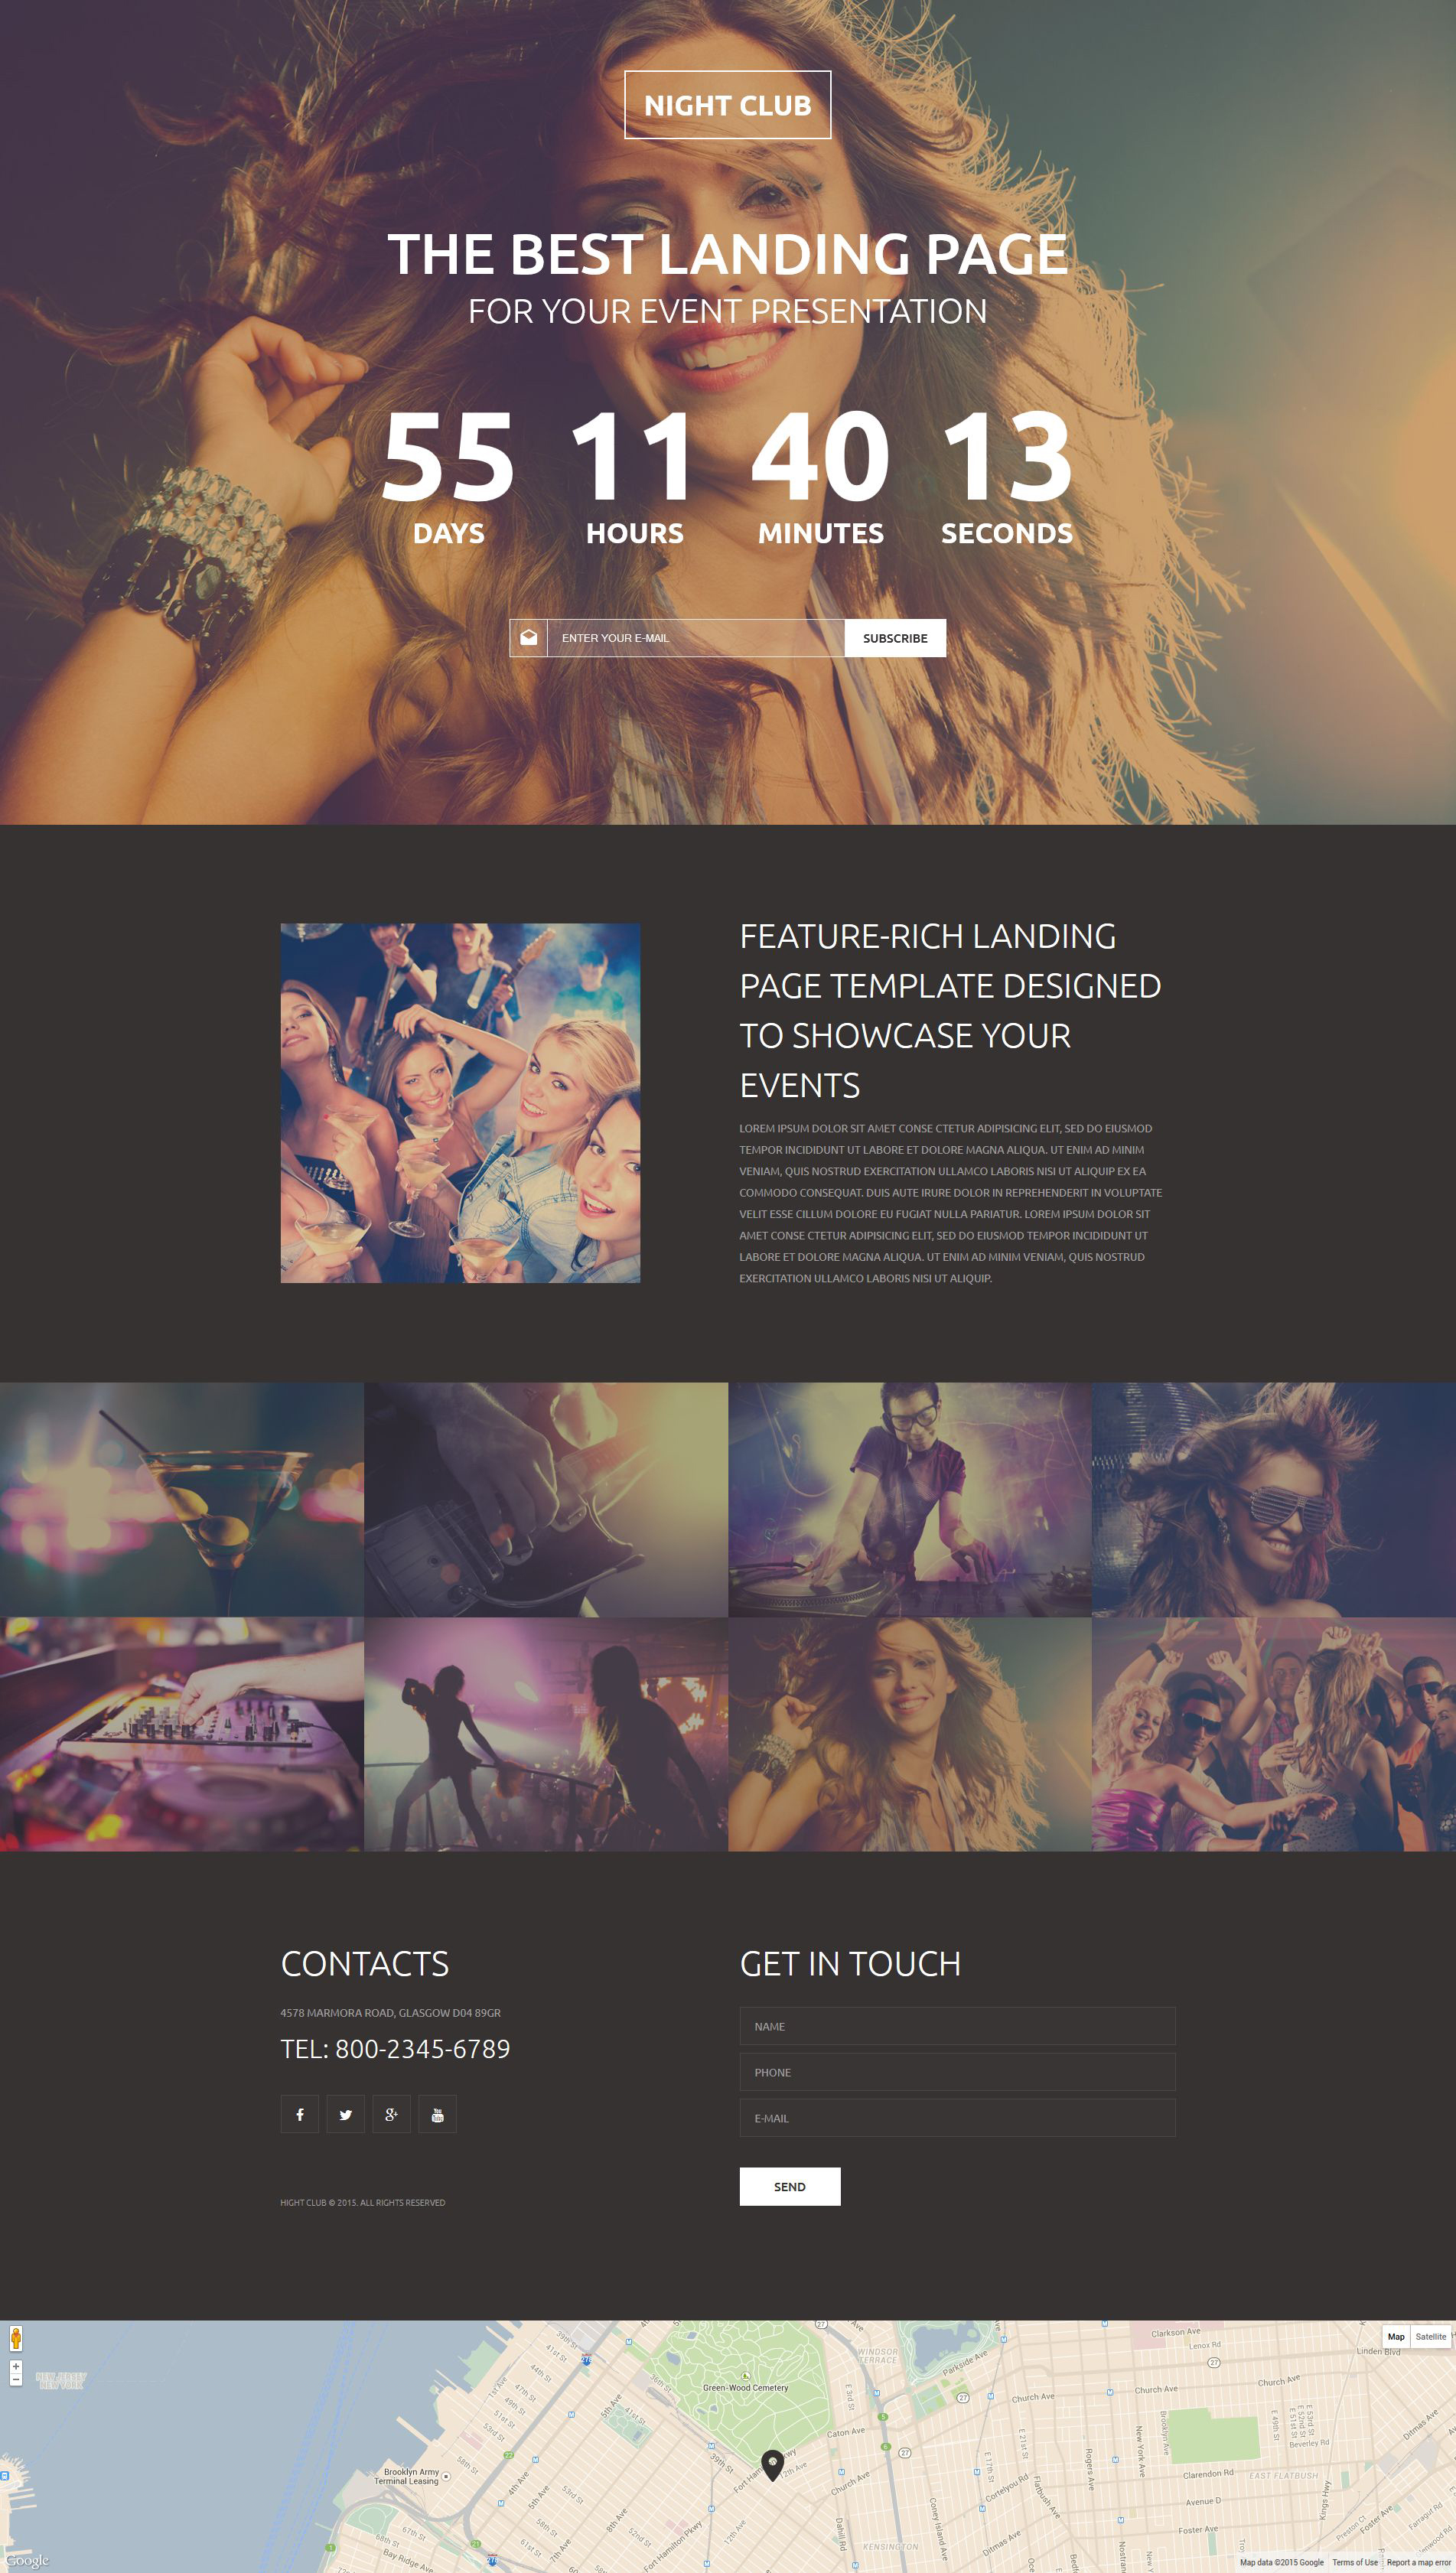 The Night Club Landing Page Template Design 53644, one of the best Landing Page templates of its kind (night club, most popular), also known as night club Landing Page template, music Landing Page template, dances Landing Page template, dancers Landing Page template, entertainment Landing Page template, joy Landing Page template, energy Landing Page template, free drinks Landing Page template, tickets Landing Page template, party Landing Page template, deejays Landing Page template, dj Landing Page template, events Landing Page template, beats Landing Page template, disks Landing Page template, songs Landing Page template, tunes Landing Page template, rhythms Landing Page template, gallery Landing Page template, photos Landing Page template, pictures Landing Page template, guests Landing Page template, participants Landing Page template, interview Landing Page template, stars Landing Page template, artists Landing Page template, funs Landing Page template, booking Landing Page template, mob Landing Page template, glamour girls Landing Page template, party Landing Page template, MC cocktail and related with night club, music, dances, dancers, entertainment, joy, energy, free drinks, tickets, party, deejays, dj, events, beats, disks, songs, tunes, rhythms, gallery, photos, pictures, guests, participants, interview, stars, artists, funs, booking, mob, glamour girls, party, MC cocktail, etc.